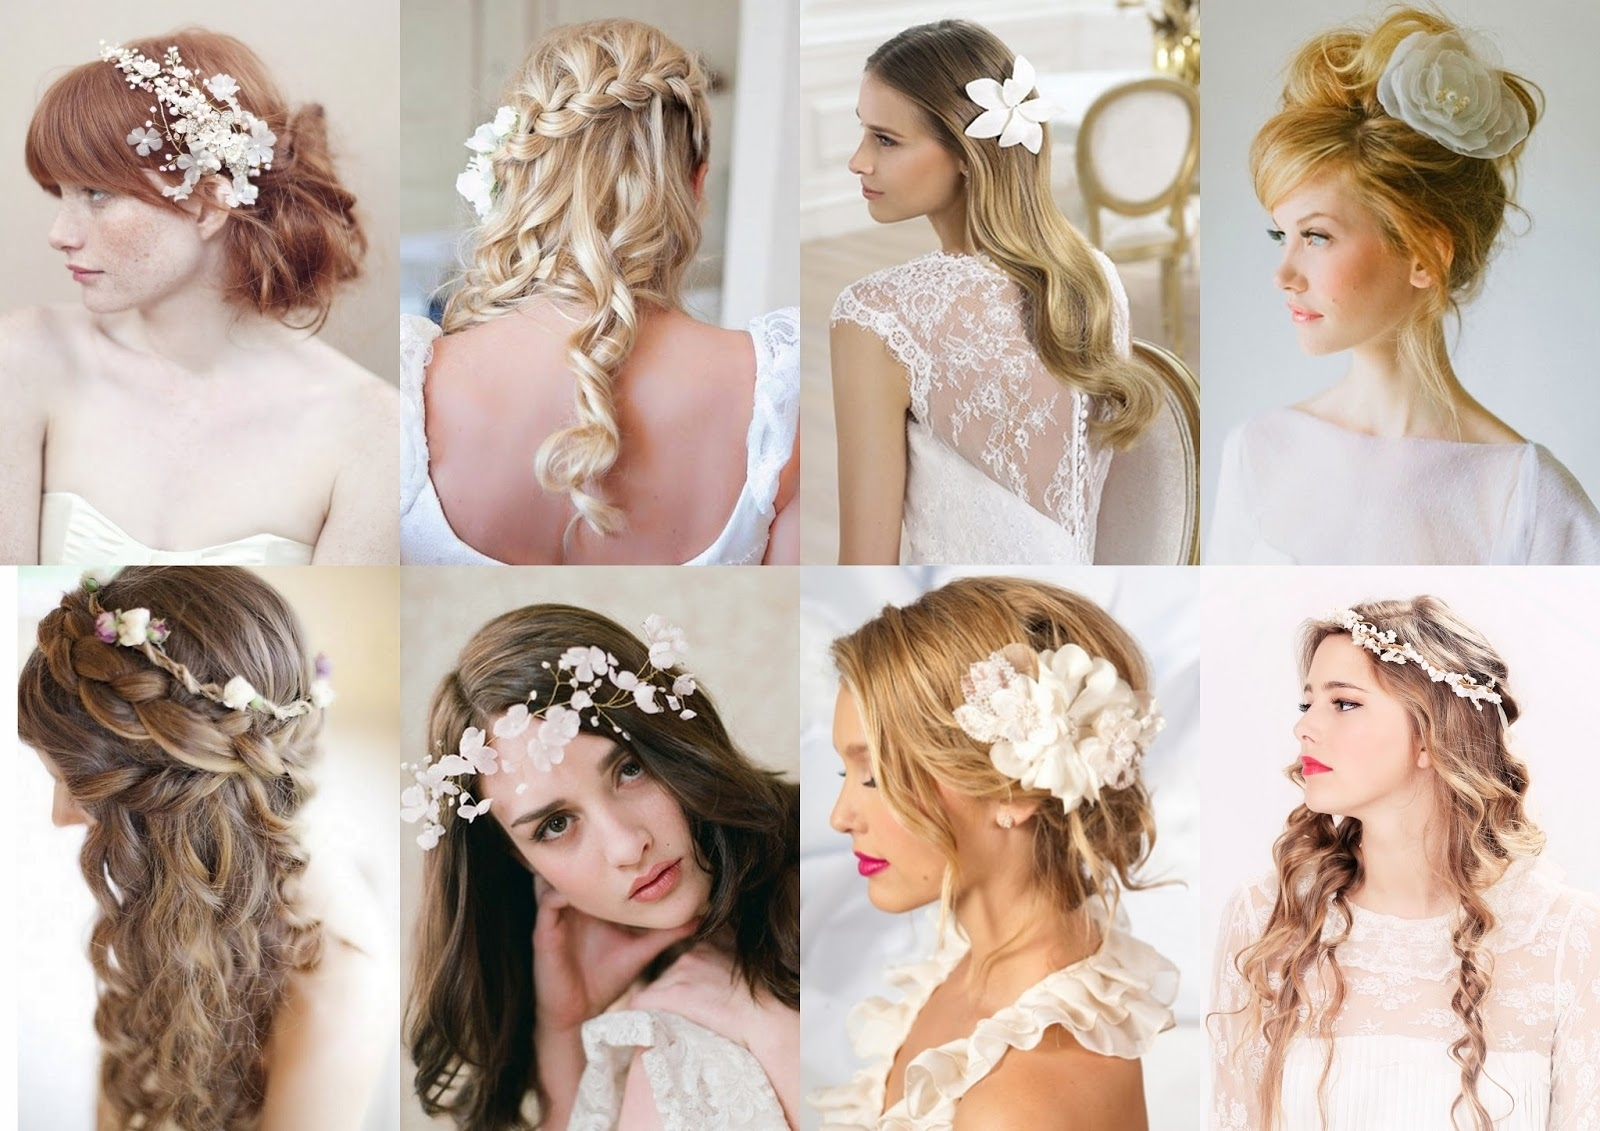 Beautiful Photos Of Wedding Guest Hairstyles With Fascinators Within Well Known Wedding Guest Hairstyles With Fascinator (Gallery 1 of 15)